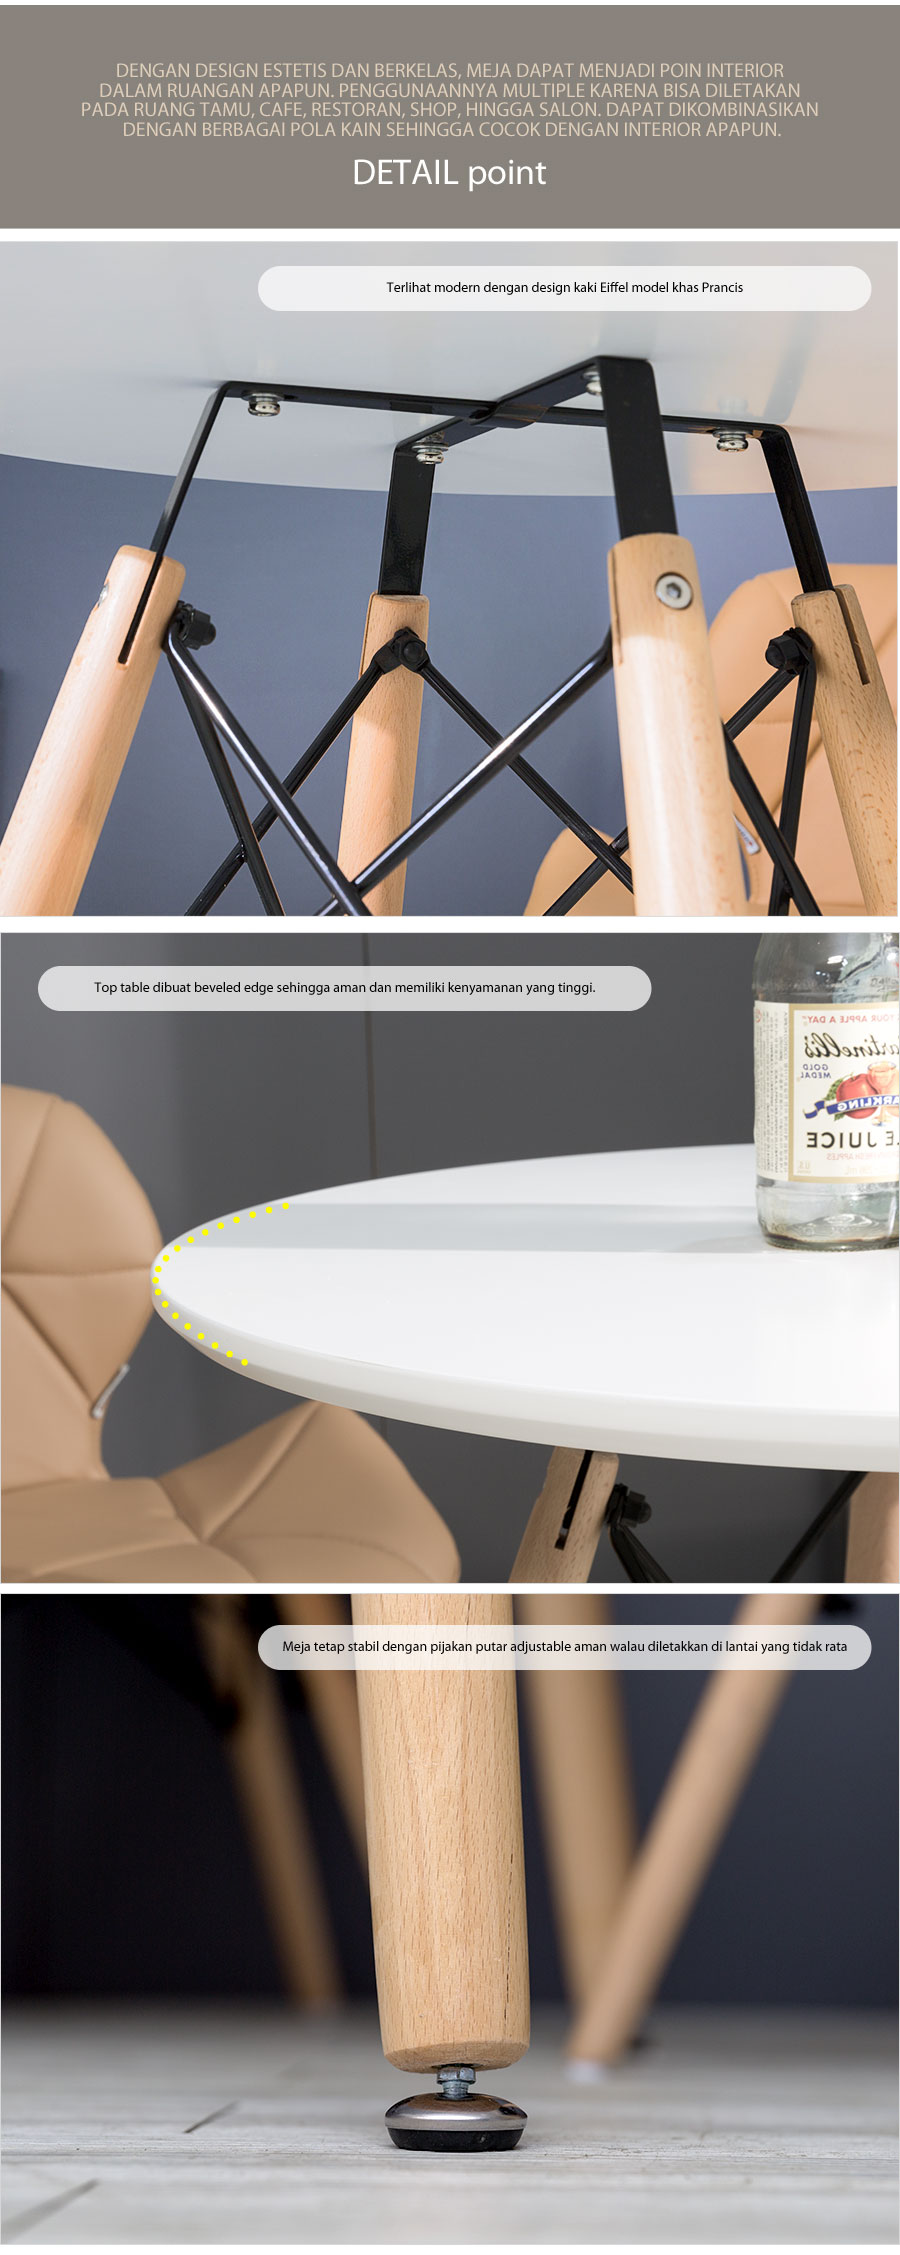 Jerry-Round-Table-800_detail.jpg